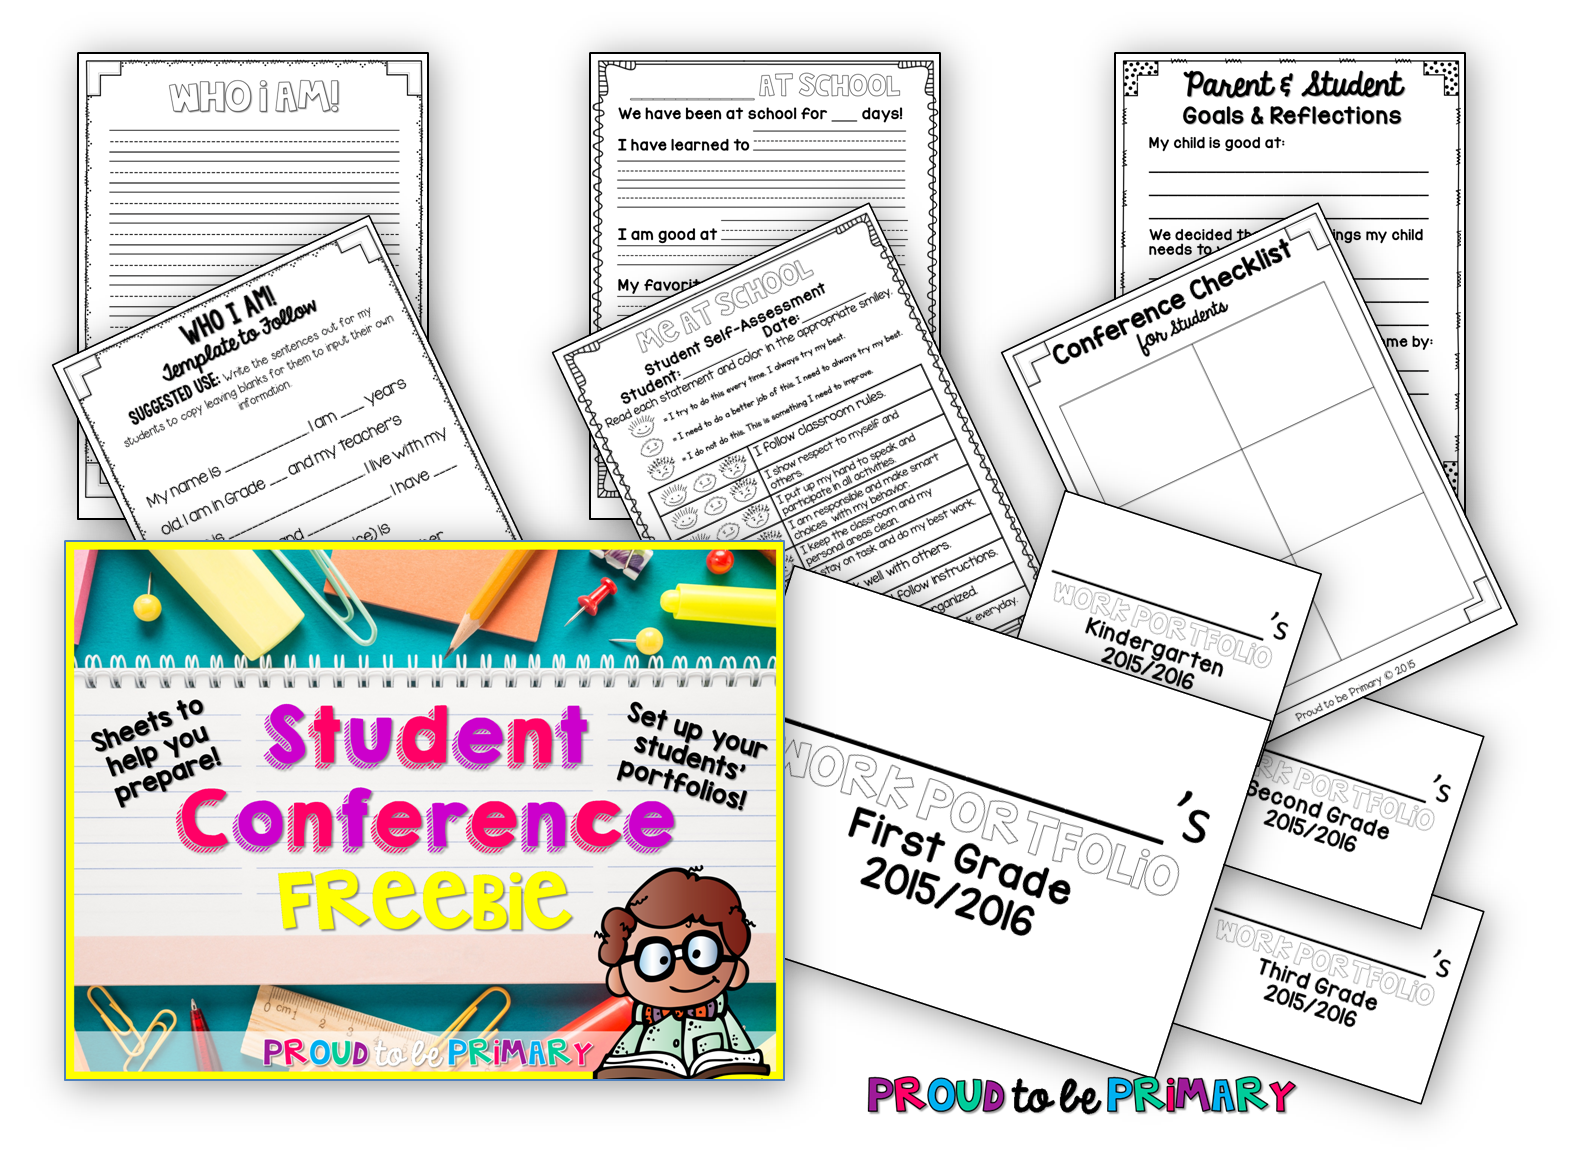 The primary pack conferences. Conference clipart student led conference